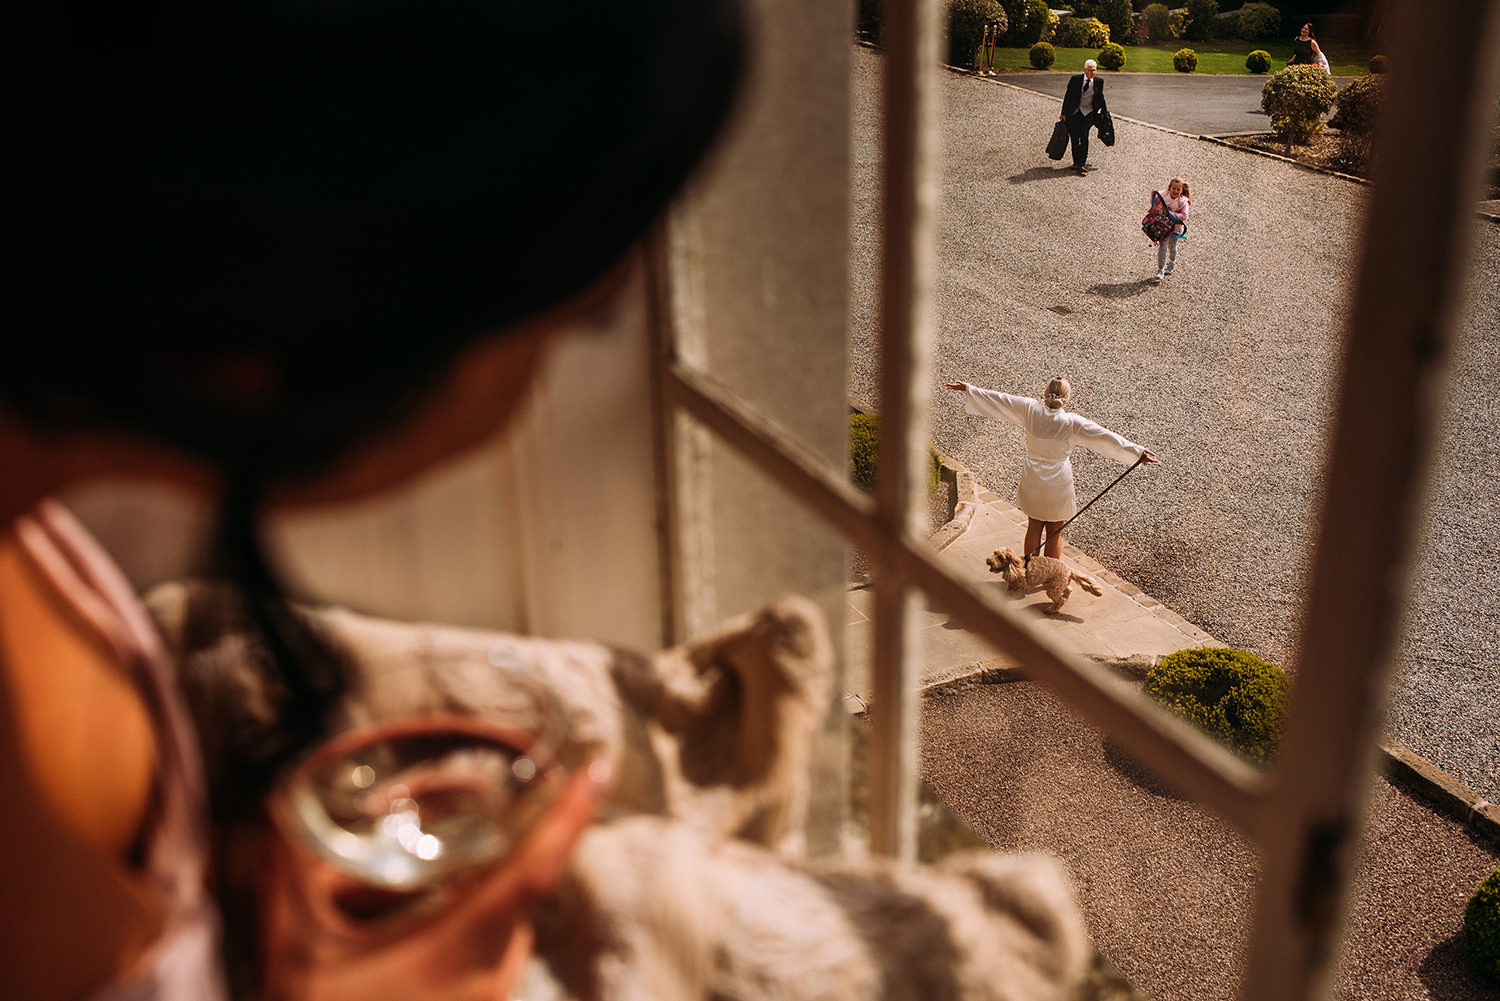 bridesmaid looks out of the window of Eaves hall at the bride hugging her friend down below